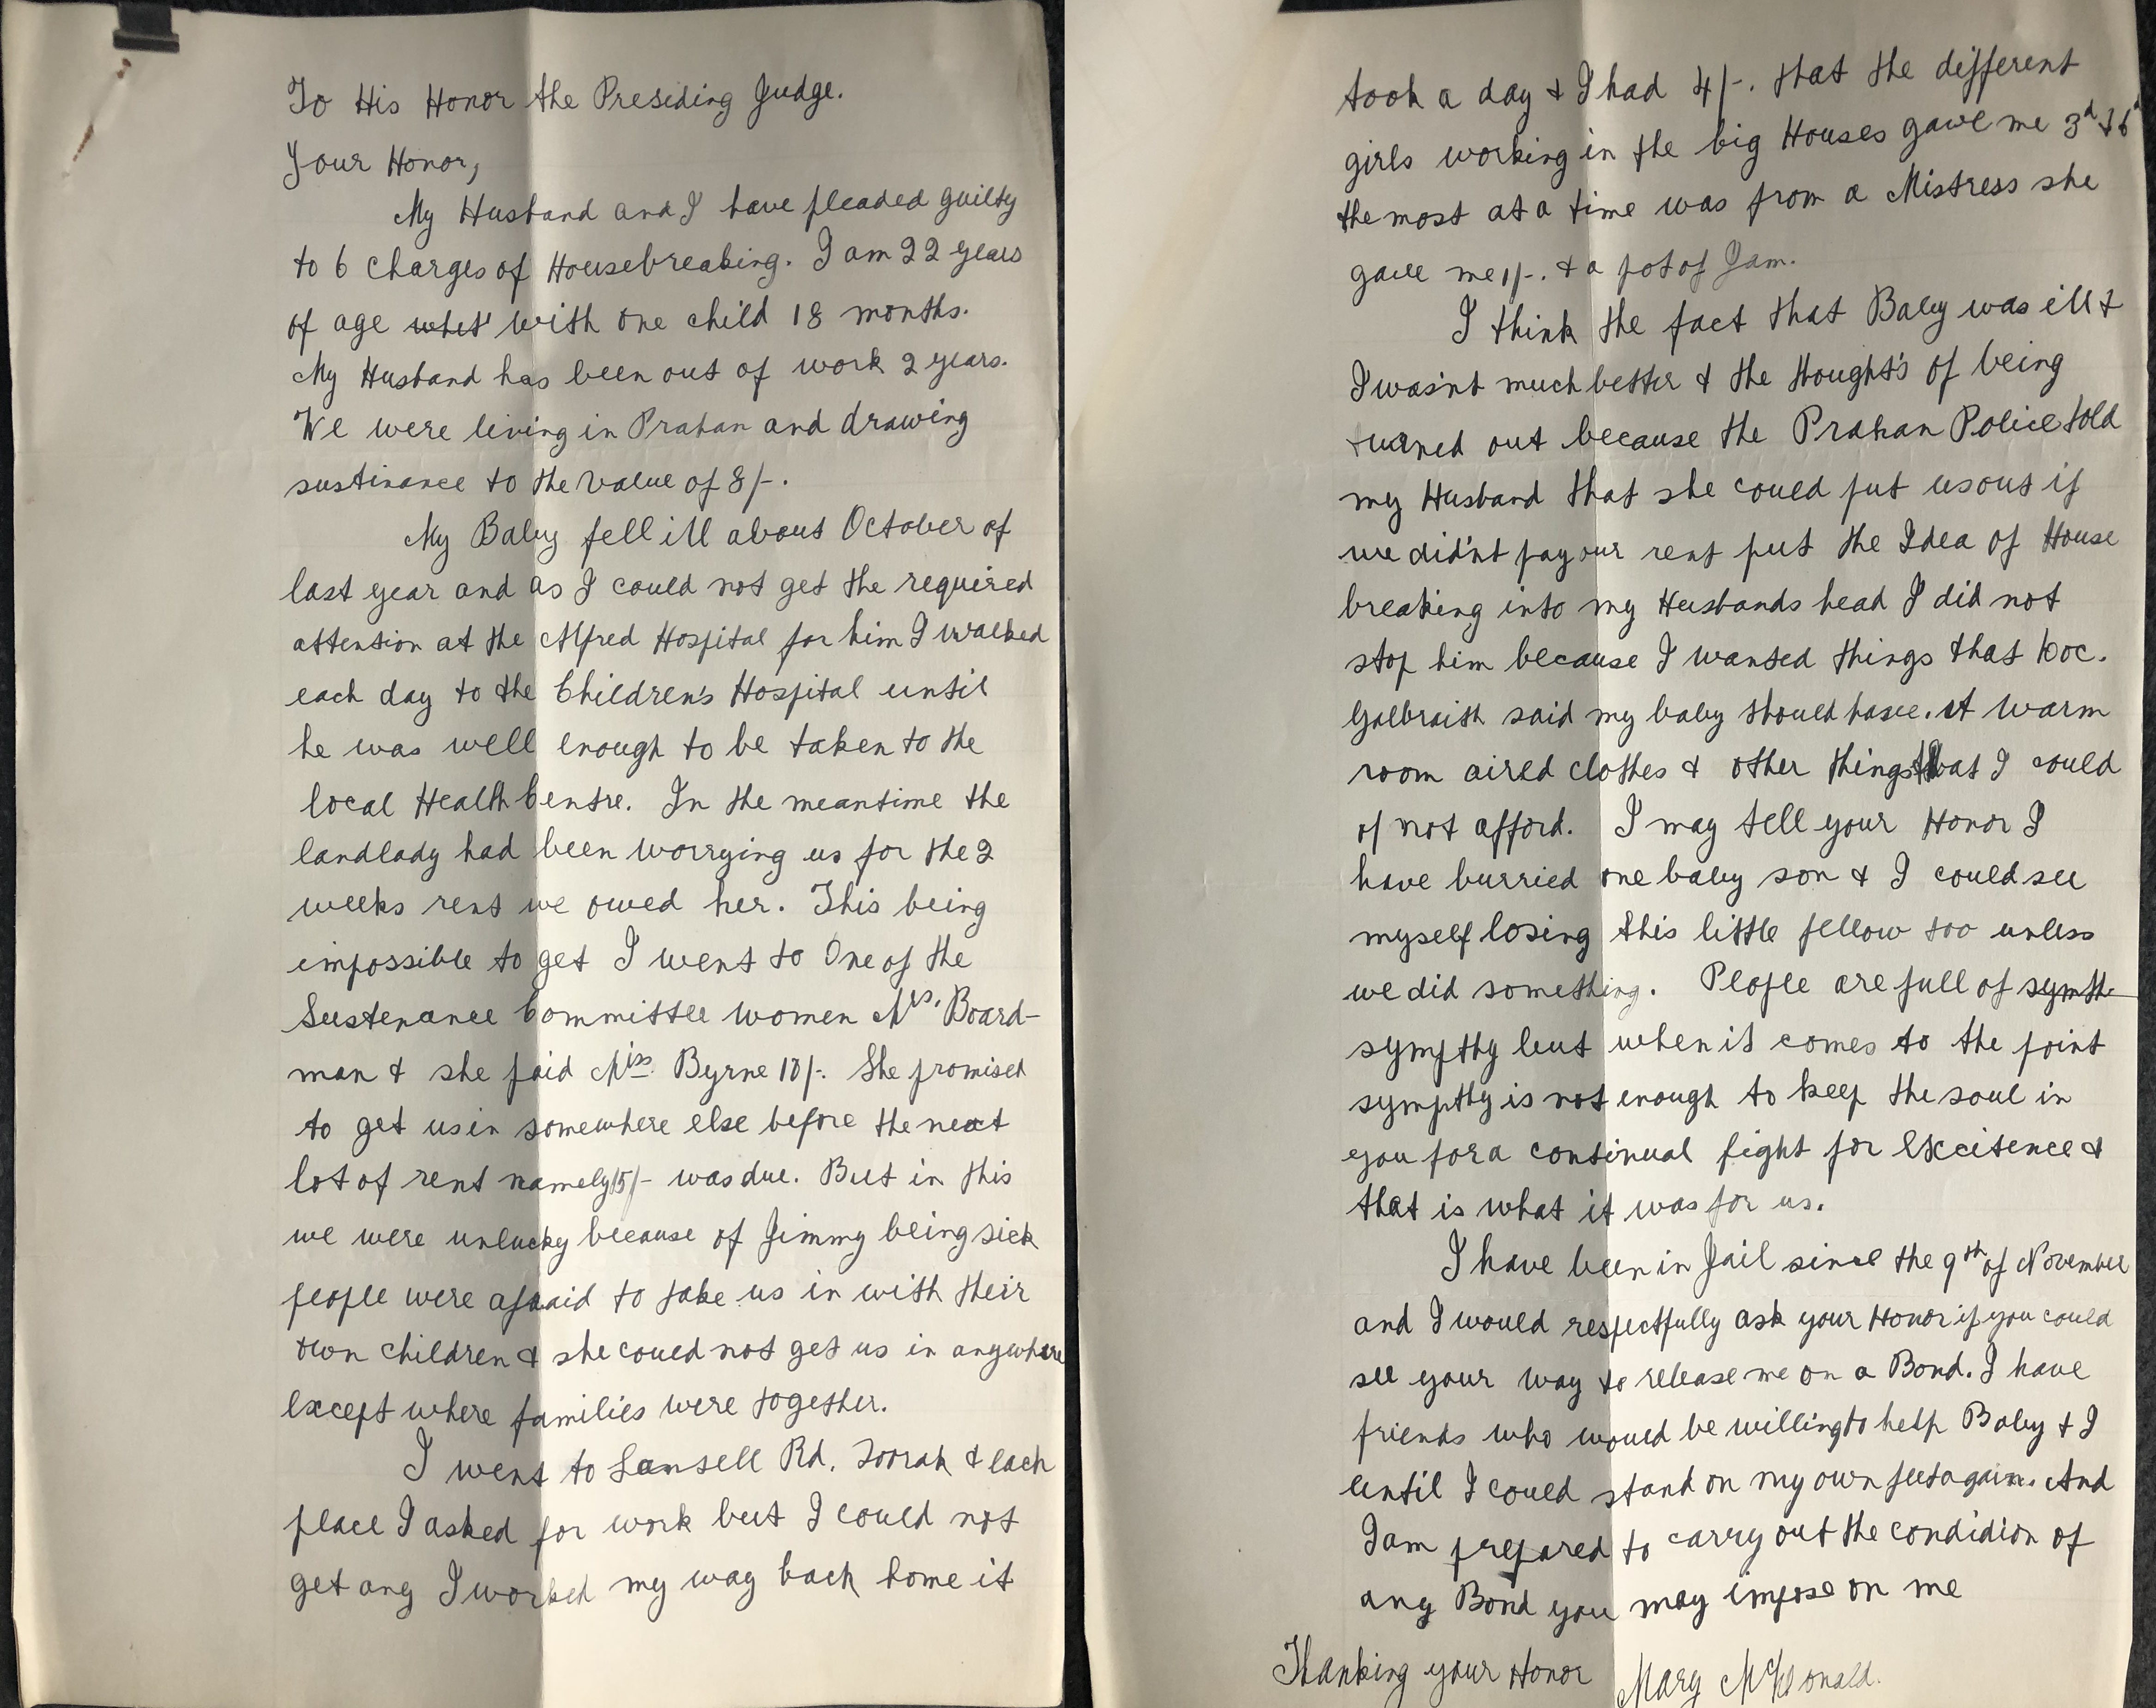 a handwritten letter from Mary to the judge where she explains her circumstances